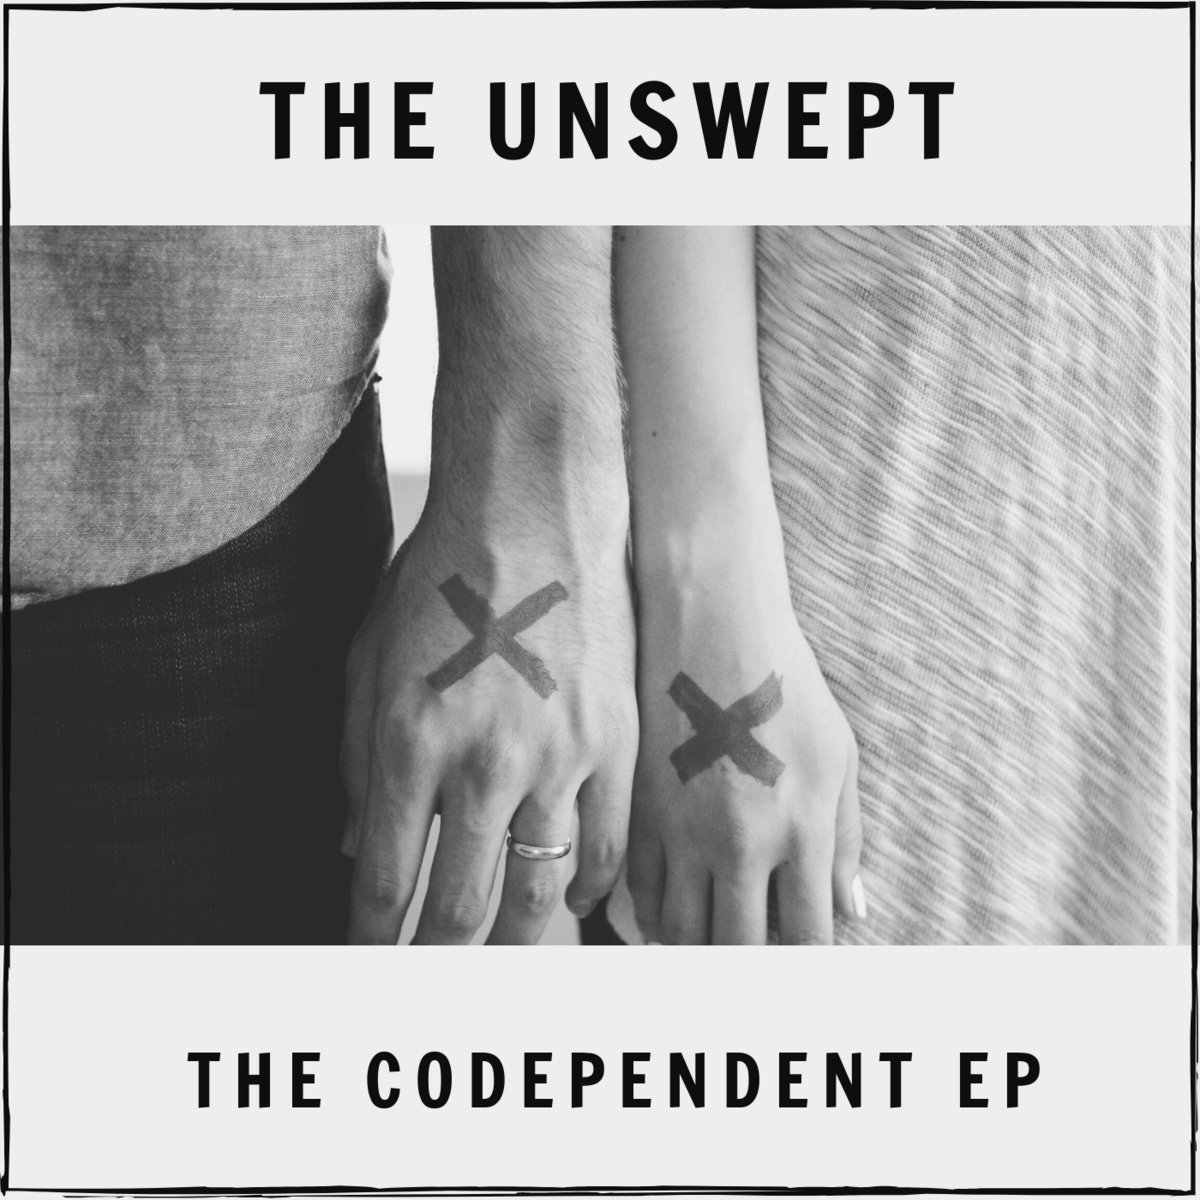 The Unswept – Forget The Day